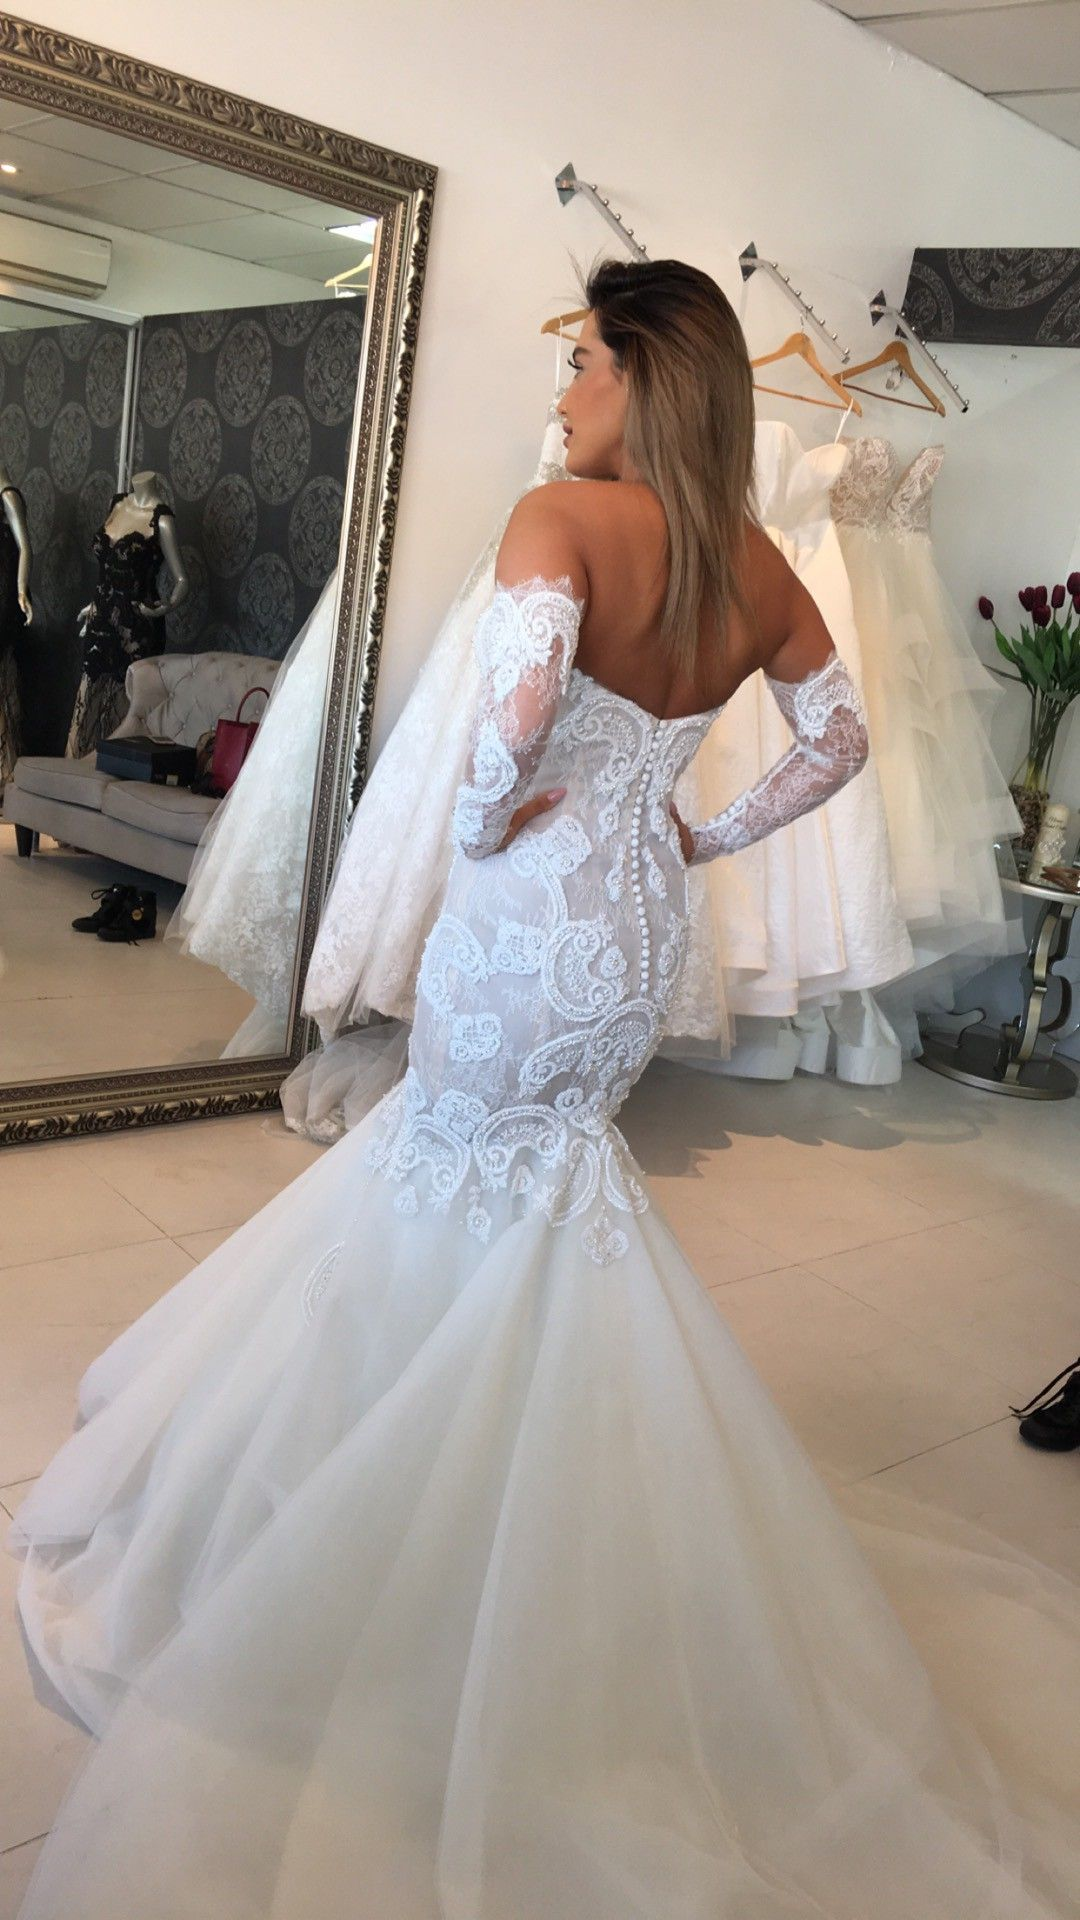 Norma bridal couture custom made size 8 wedding dress couture norma bridal couture custom made pre owned wedding dress on sale 18 off ombrellifo Image collections